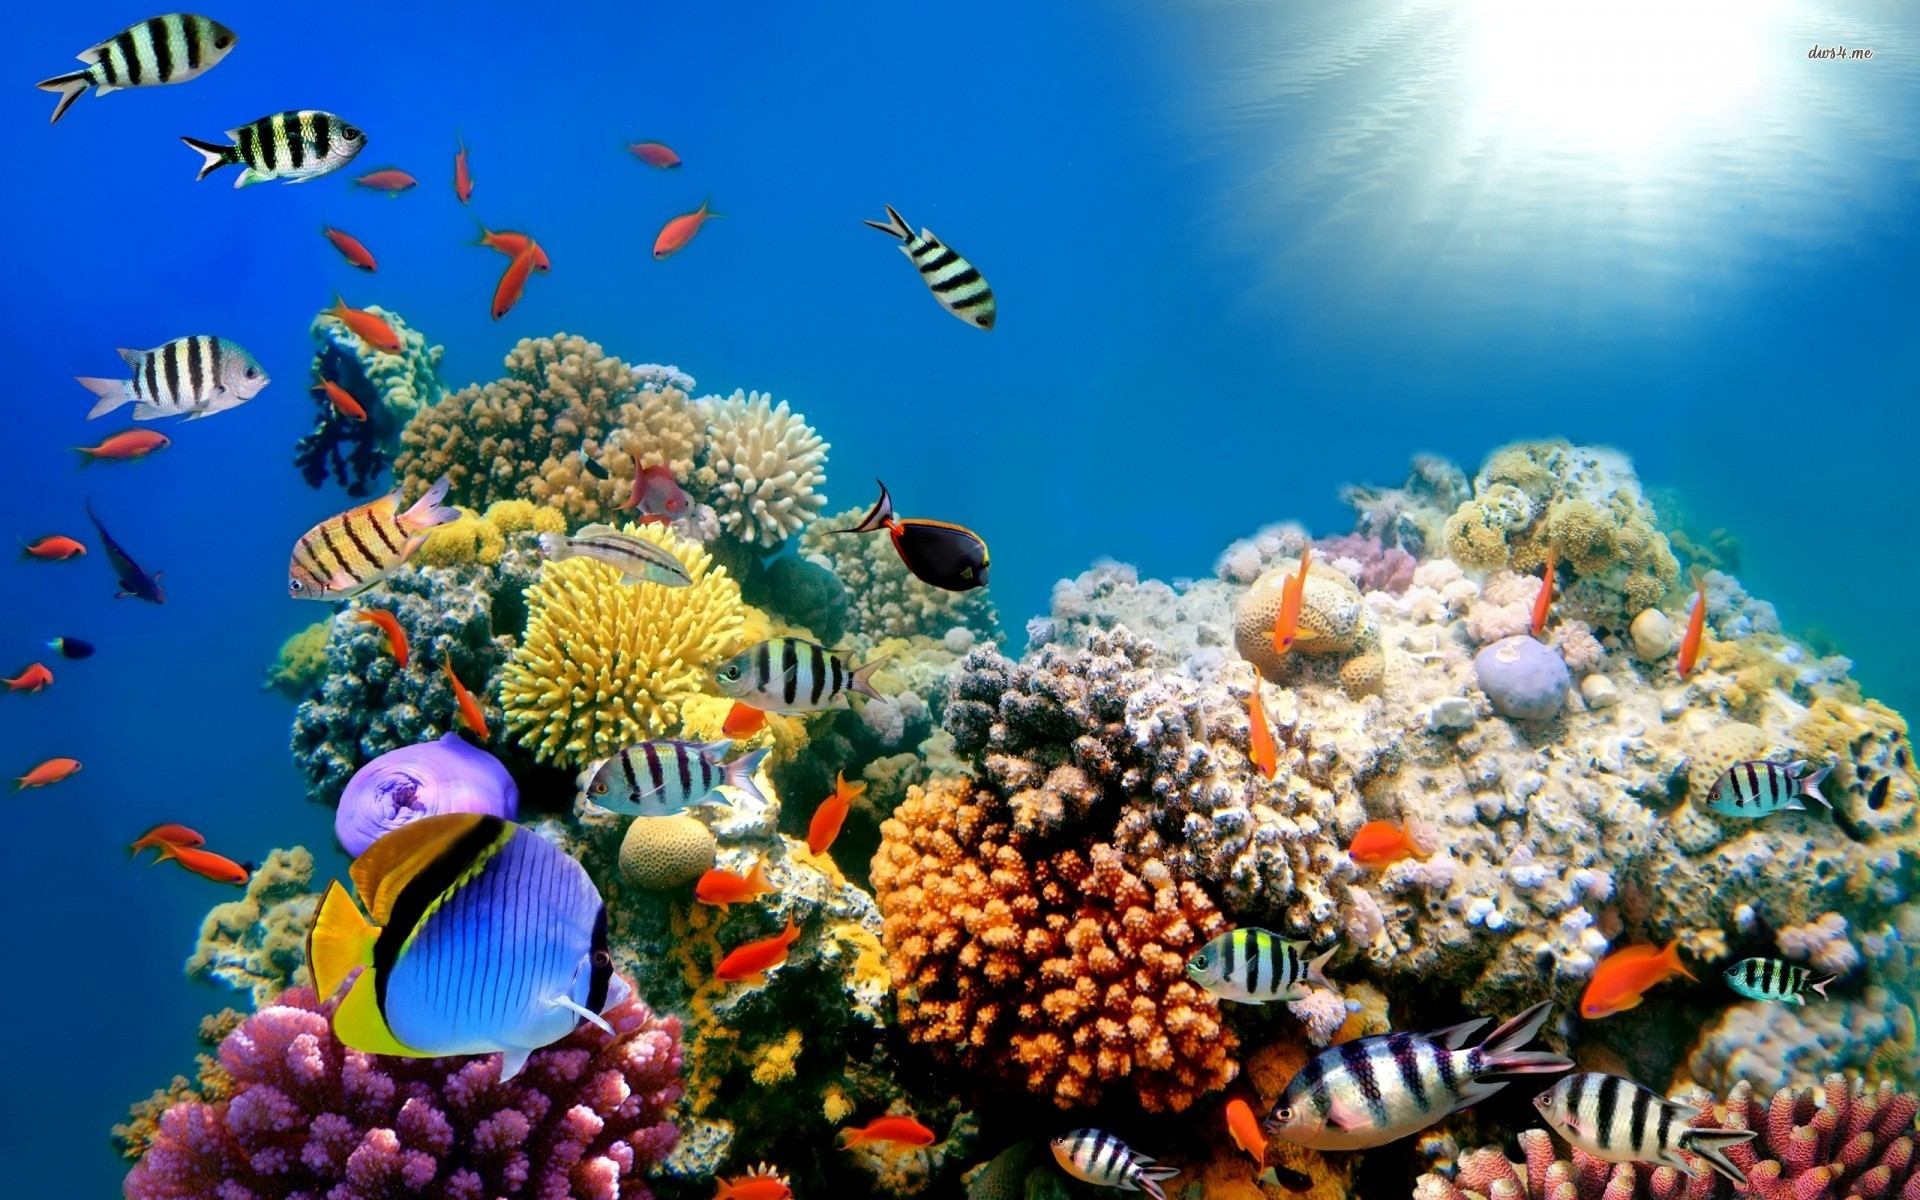 wallpaper of fishes in sea